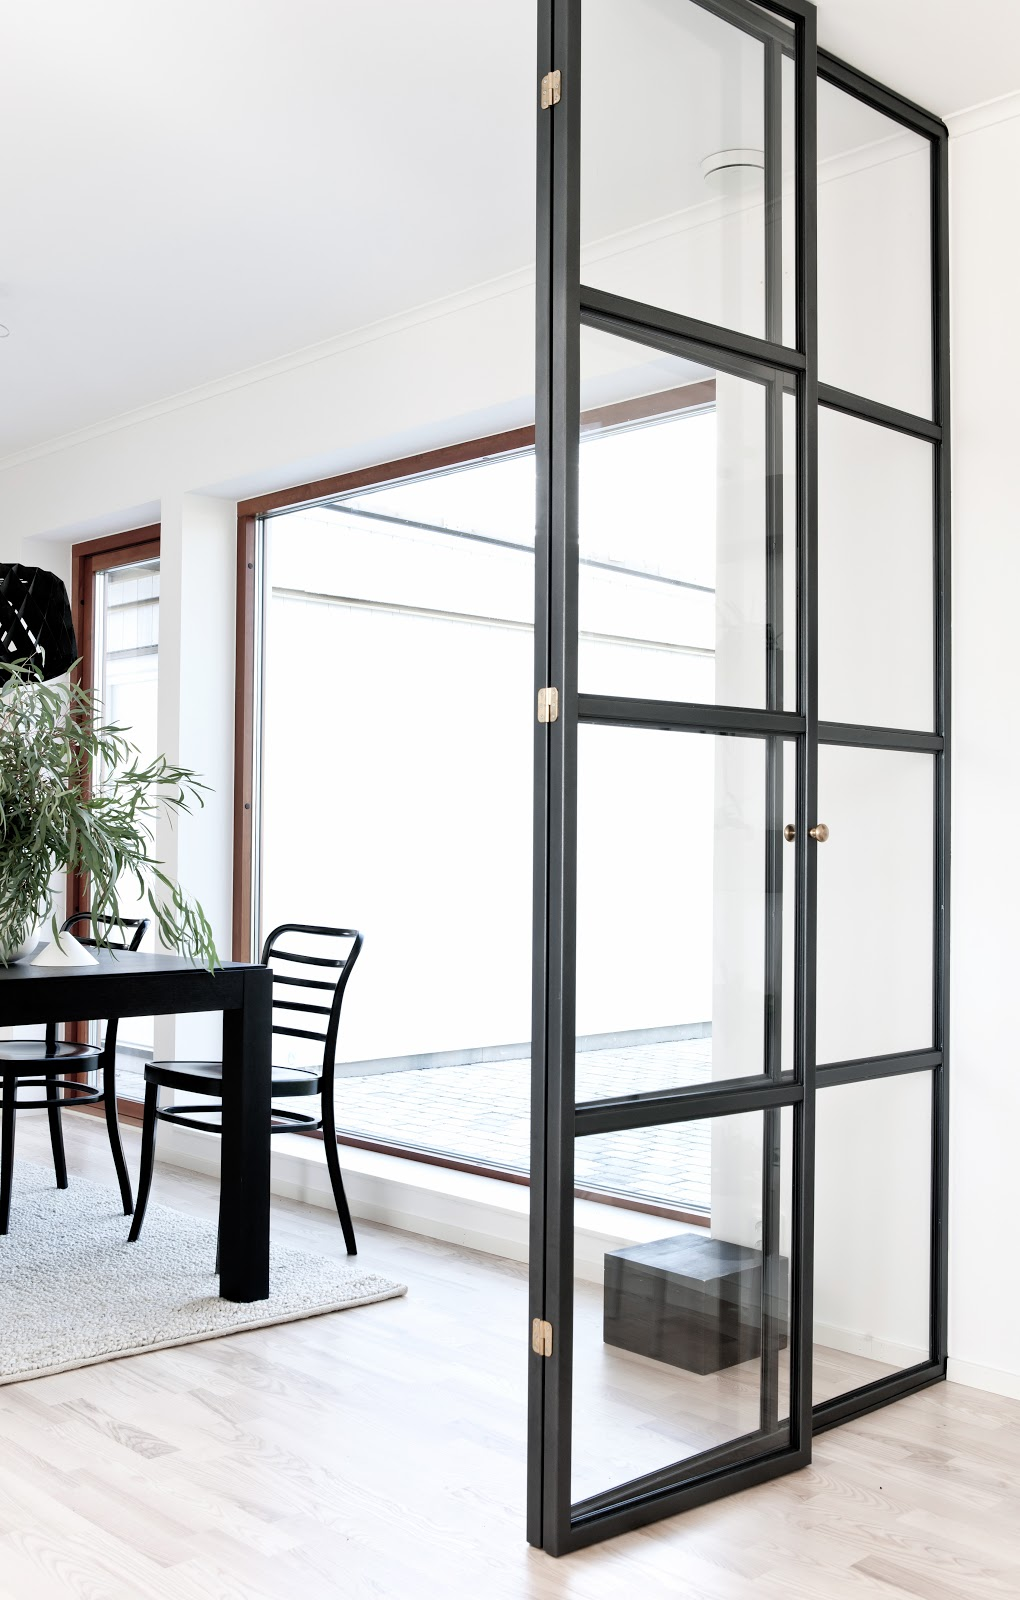 Minimal styling by annaleena nordic days by flor linckens for Glass door frame